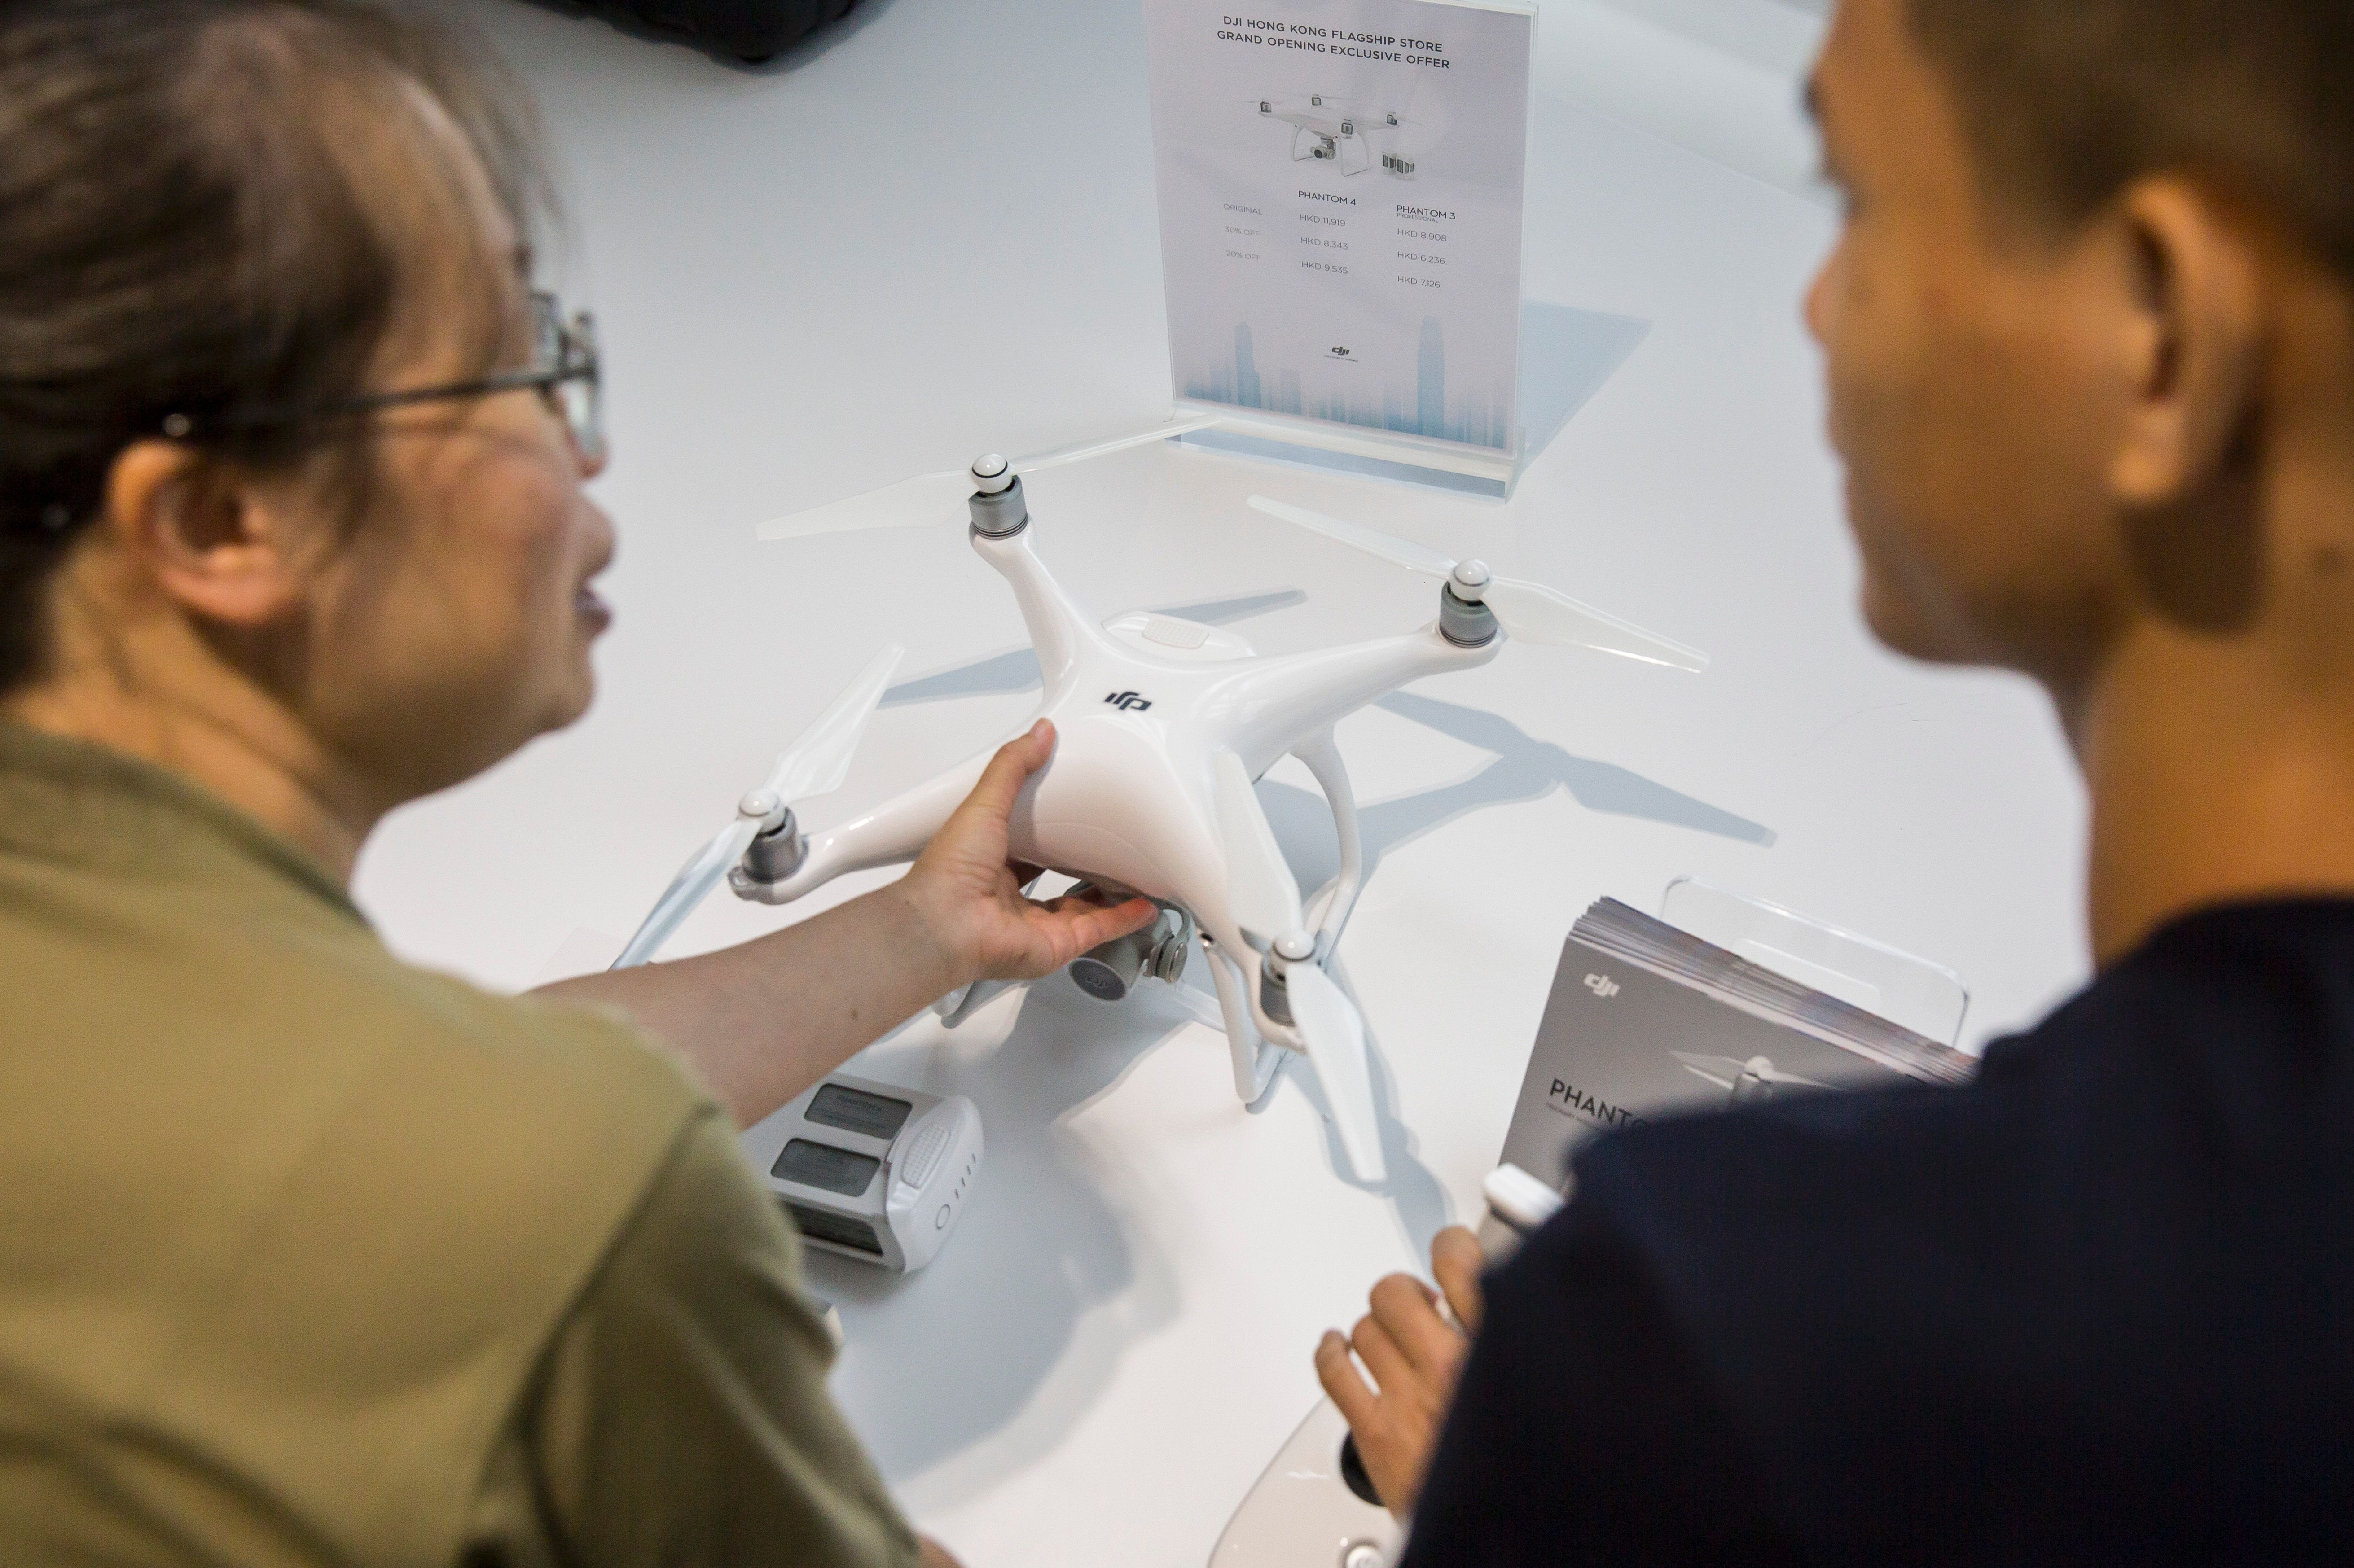 DJI eases geofencing restrictions, allowing enterprise users to fly drones over sensitive areas